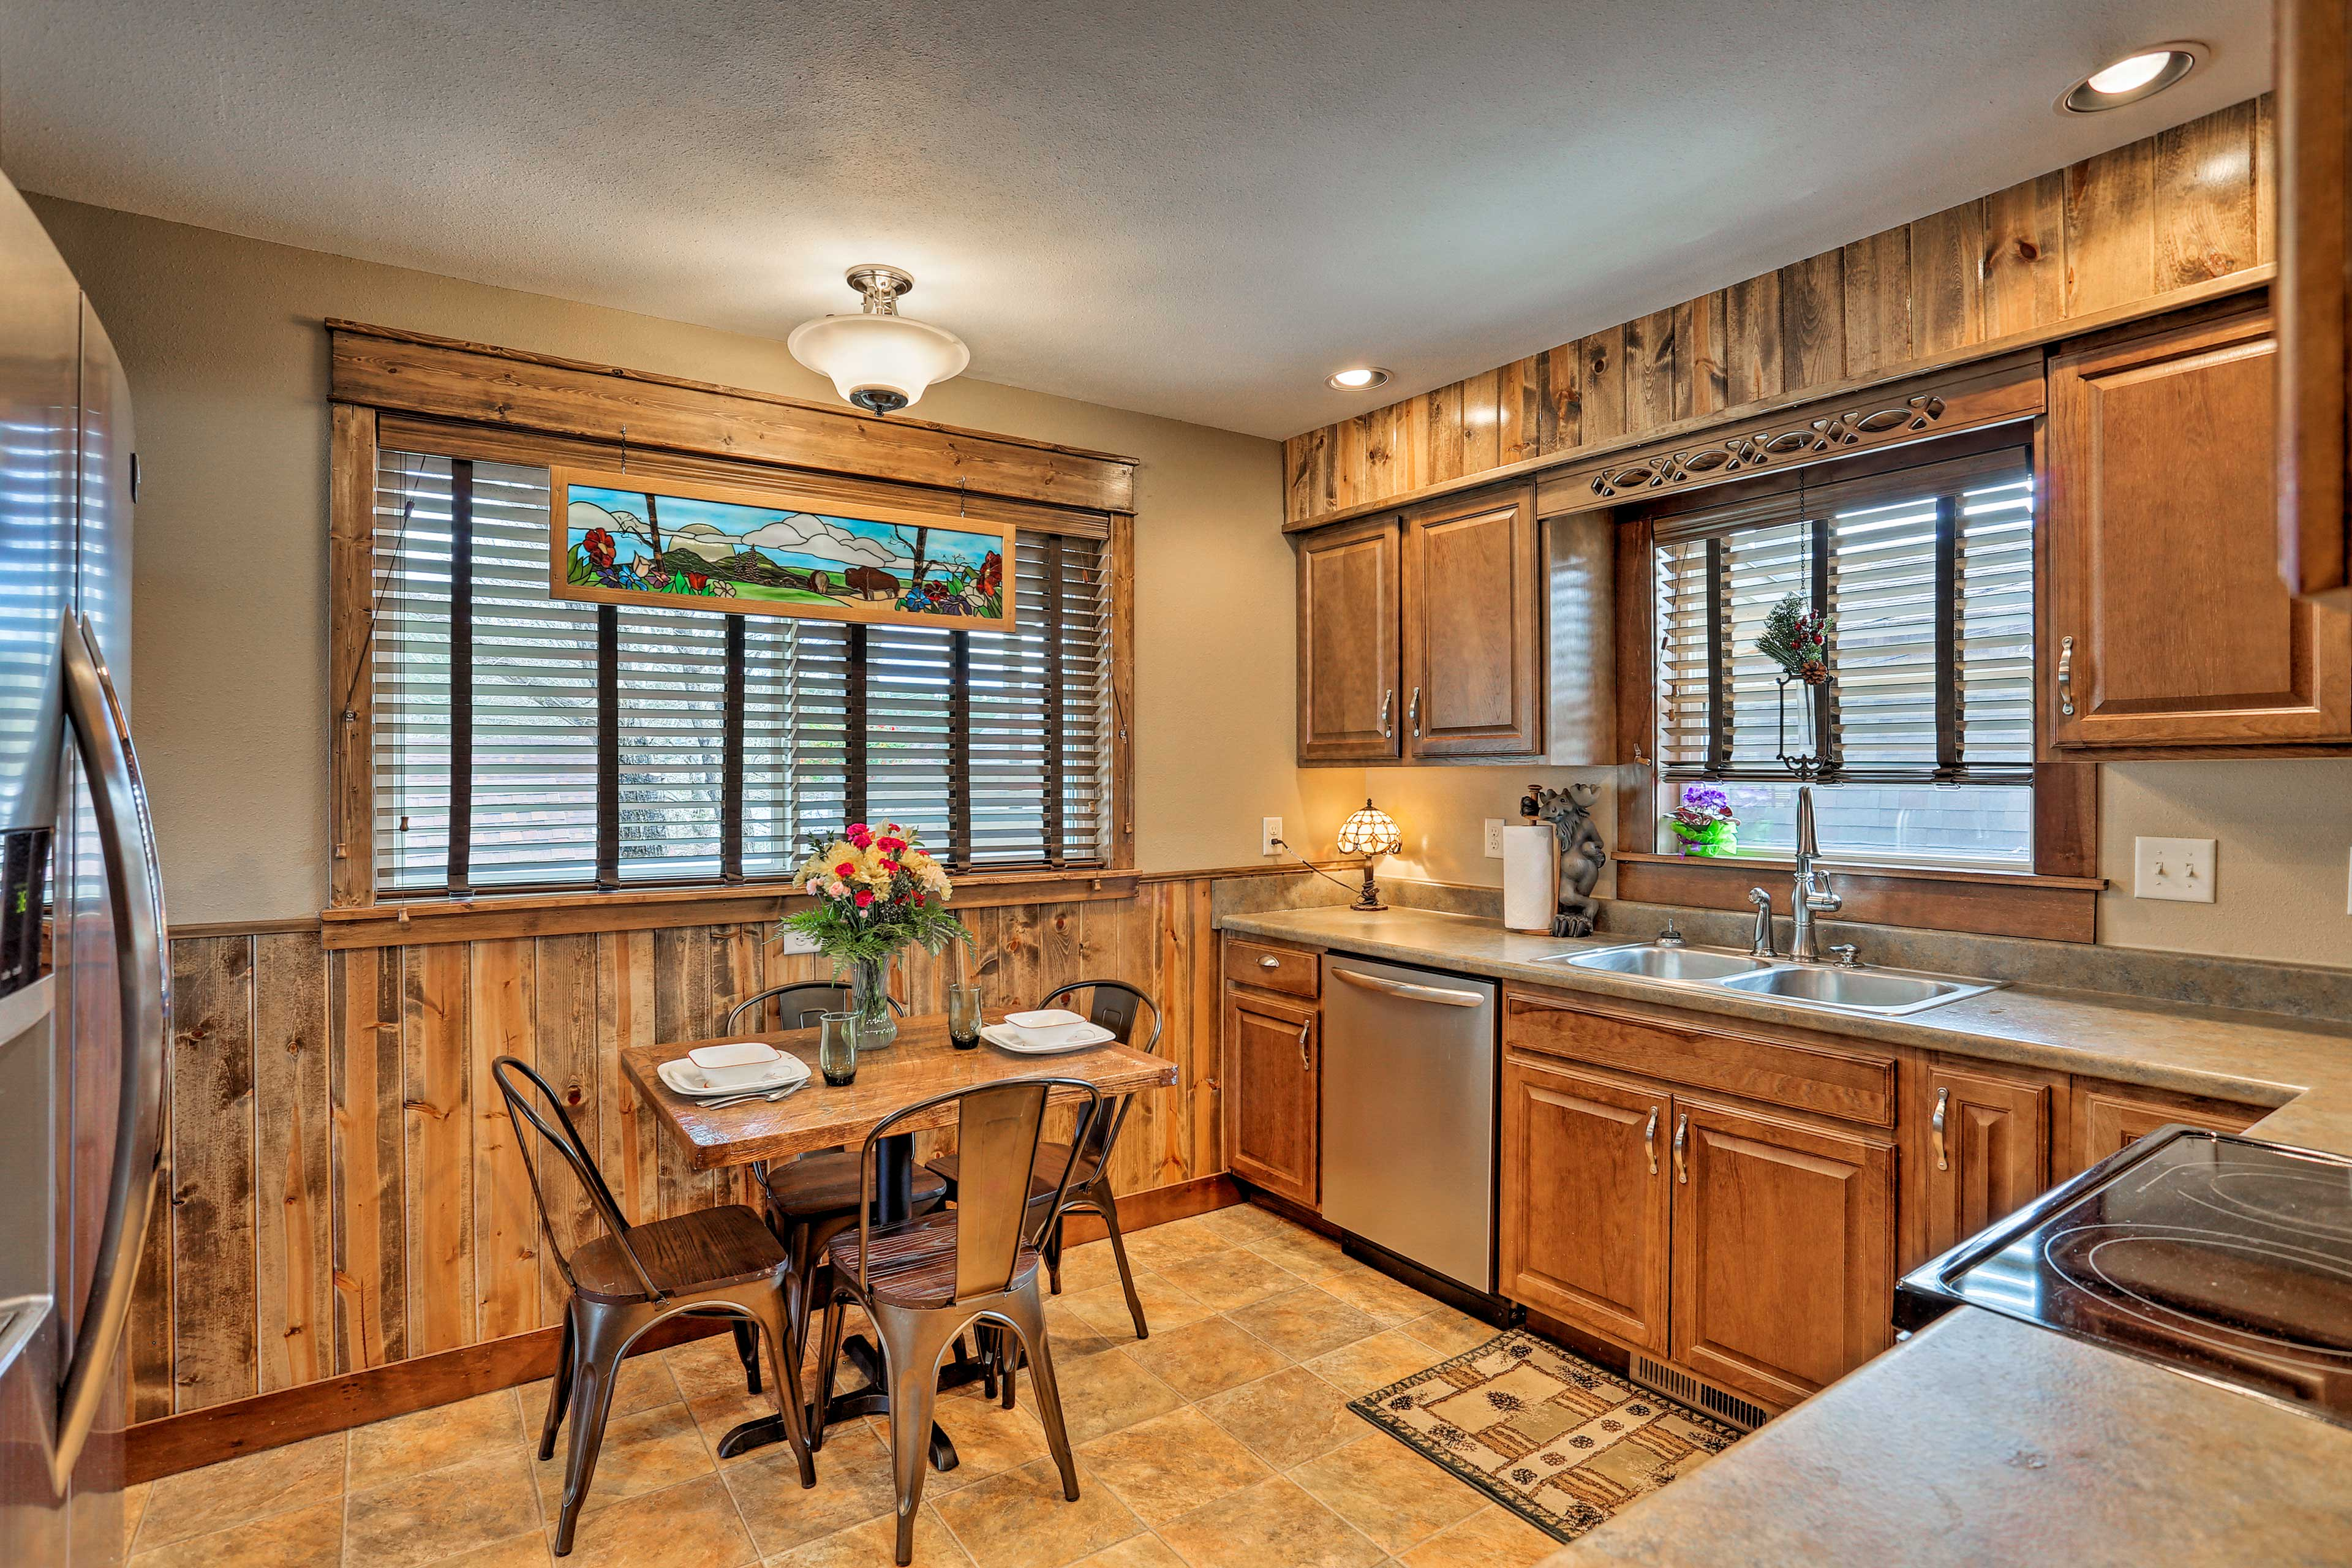 Prepare scrumptious meals in the fully equipped kitchen.